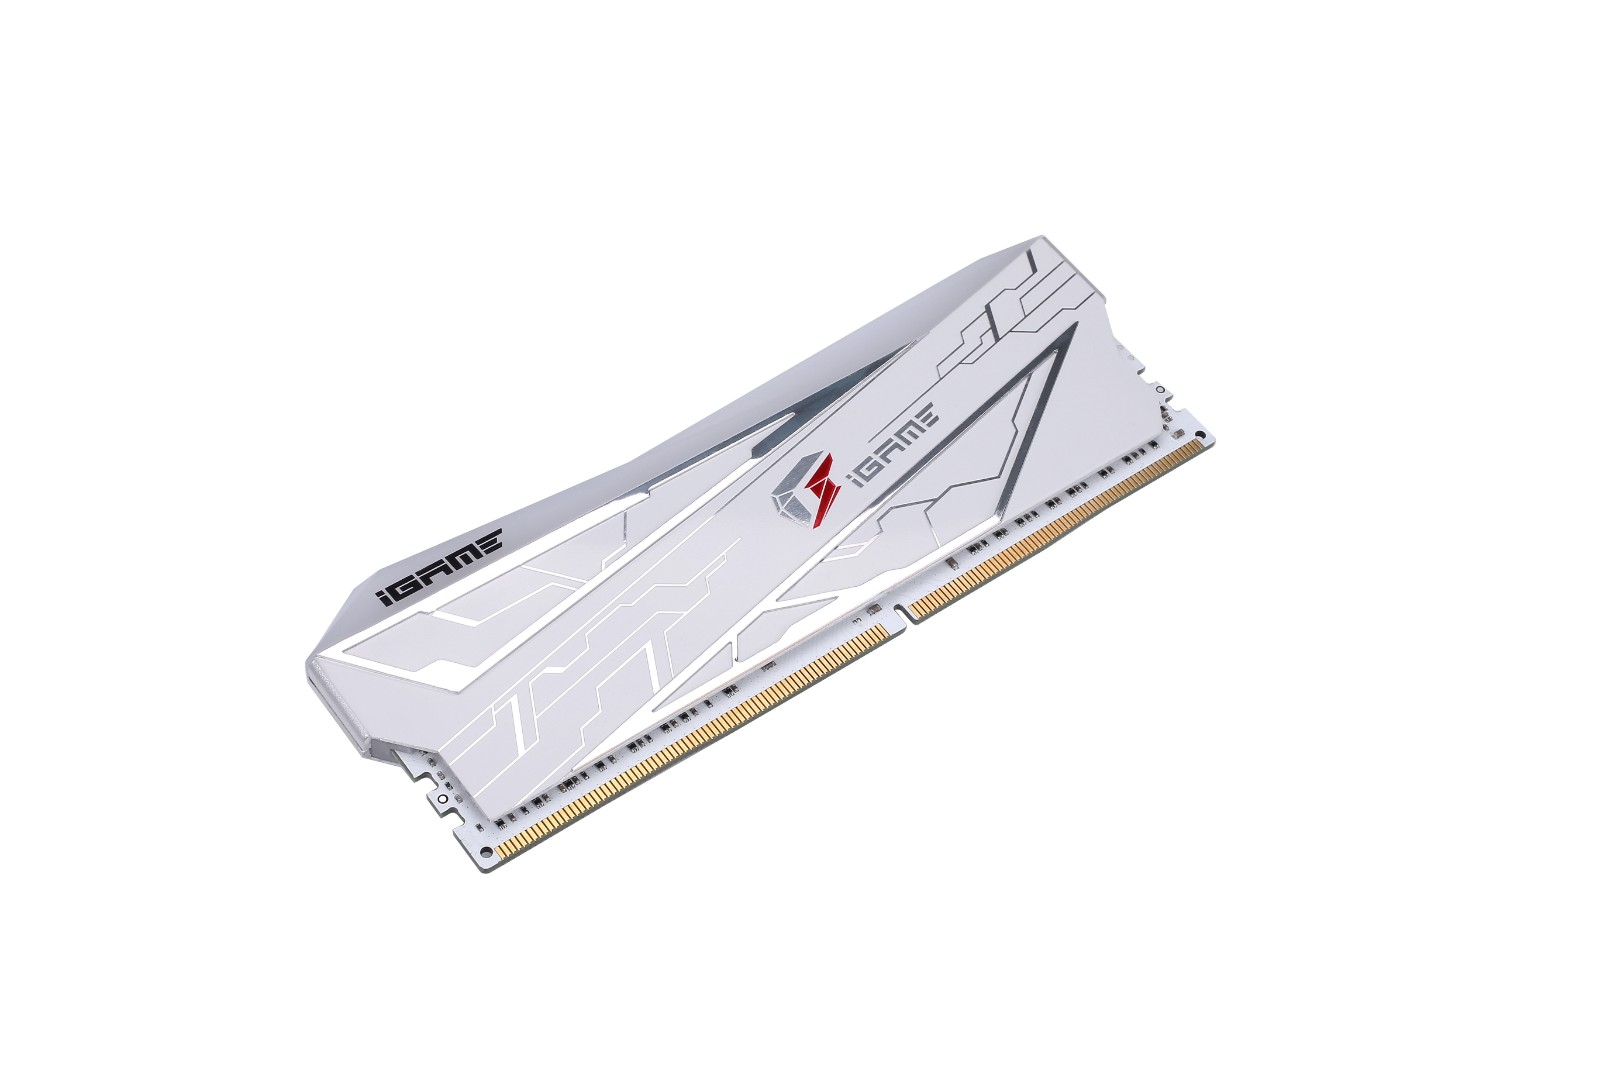 iGame Vulcan DDR4 8G 4266